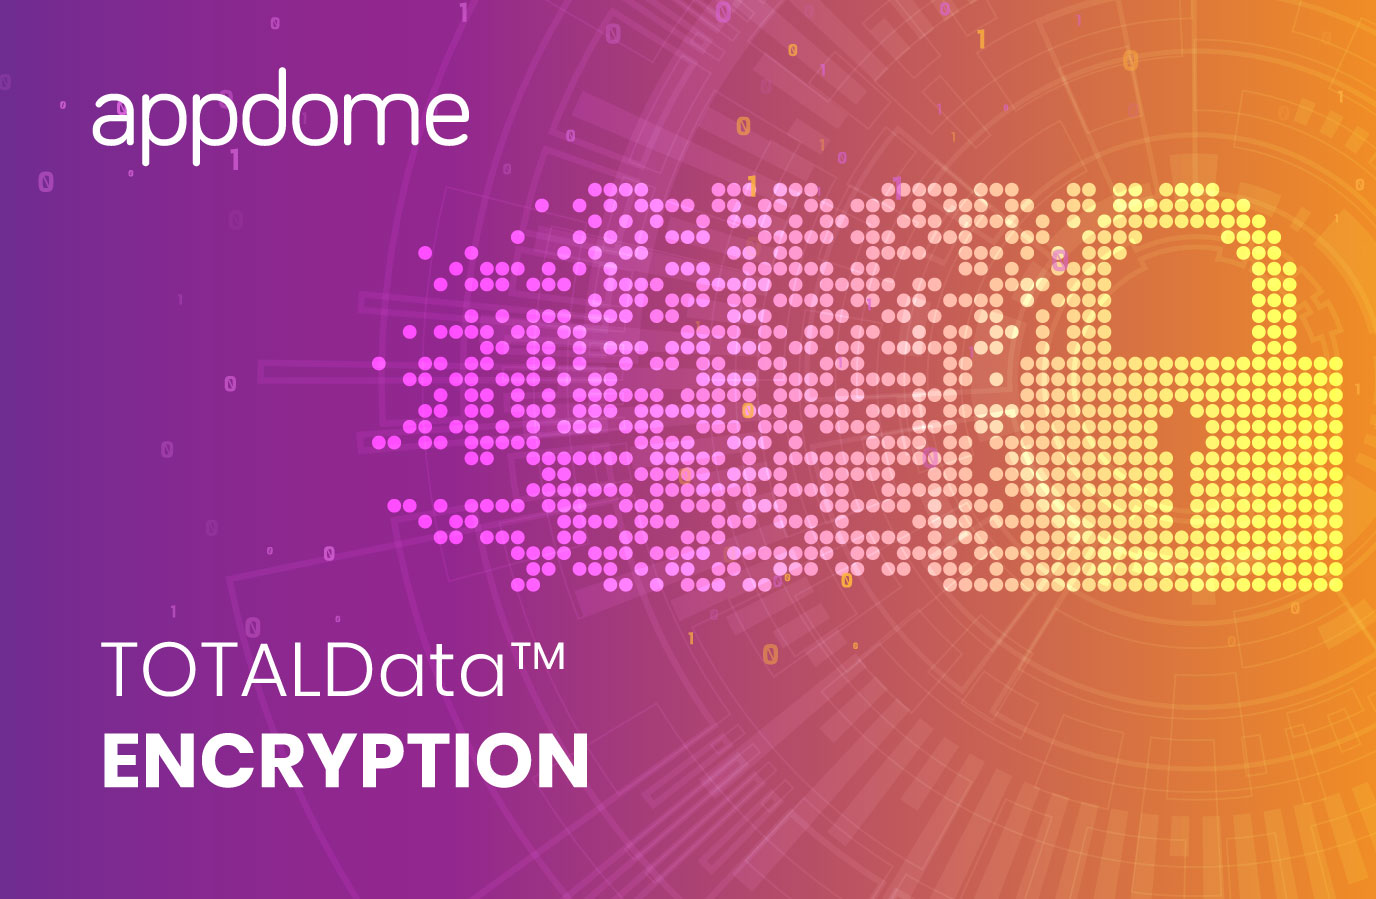 Appdome TOTALData Encryption offers complete iOS data encryption and Android data encryption